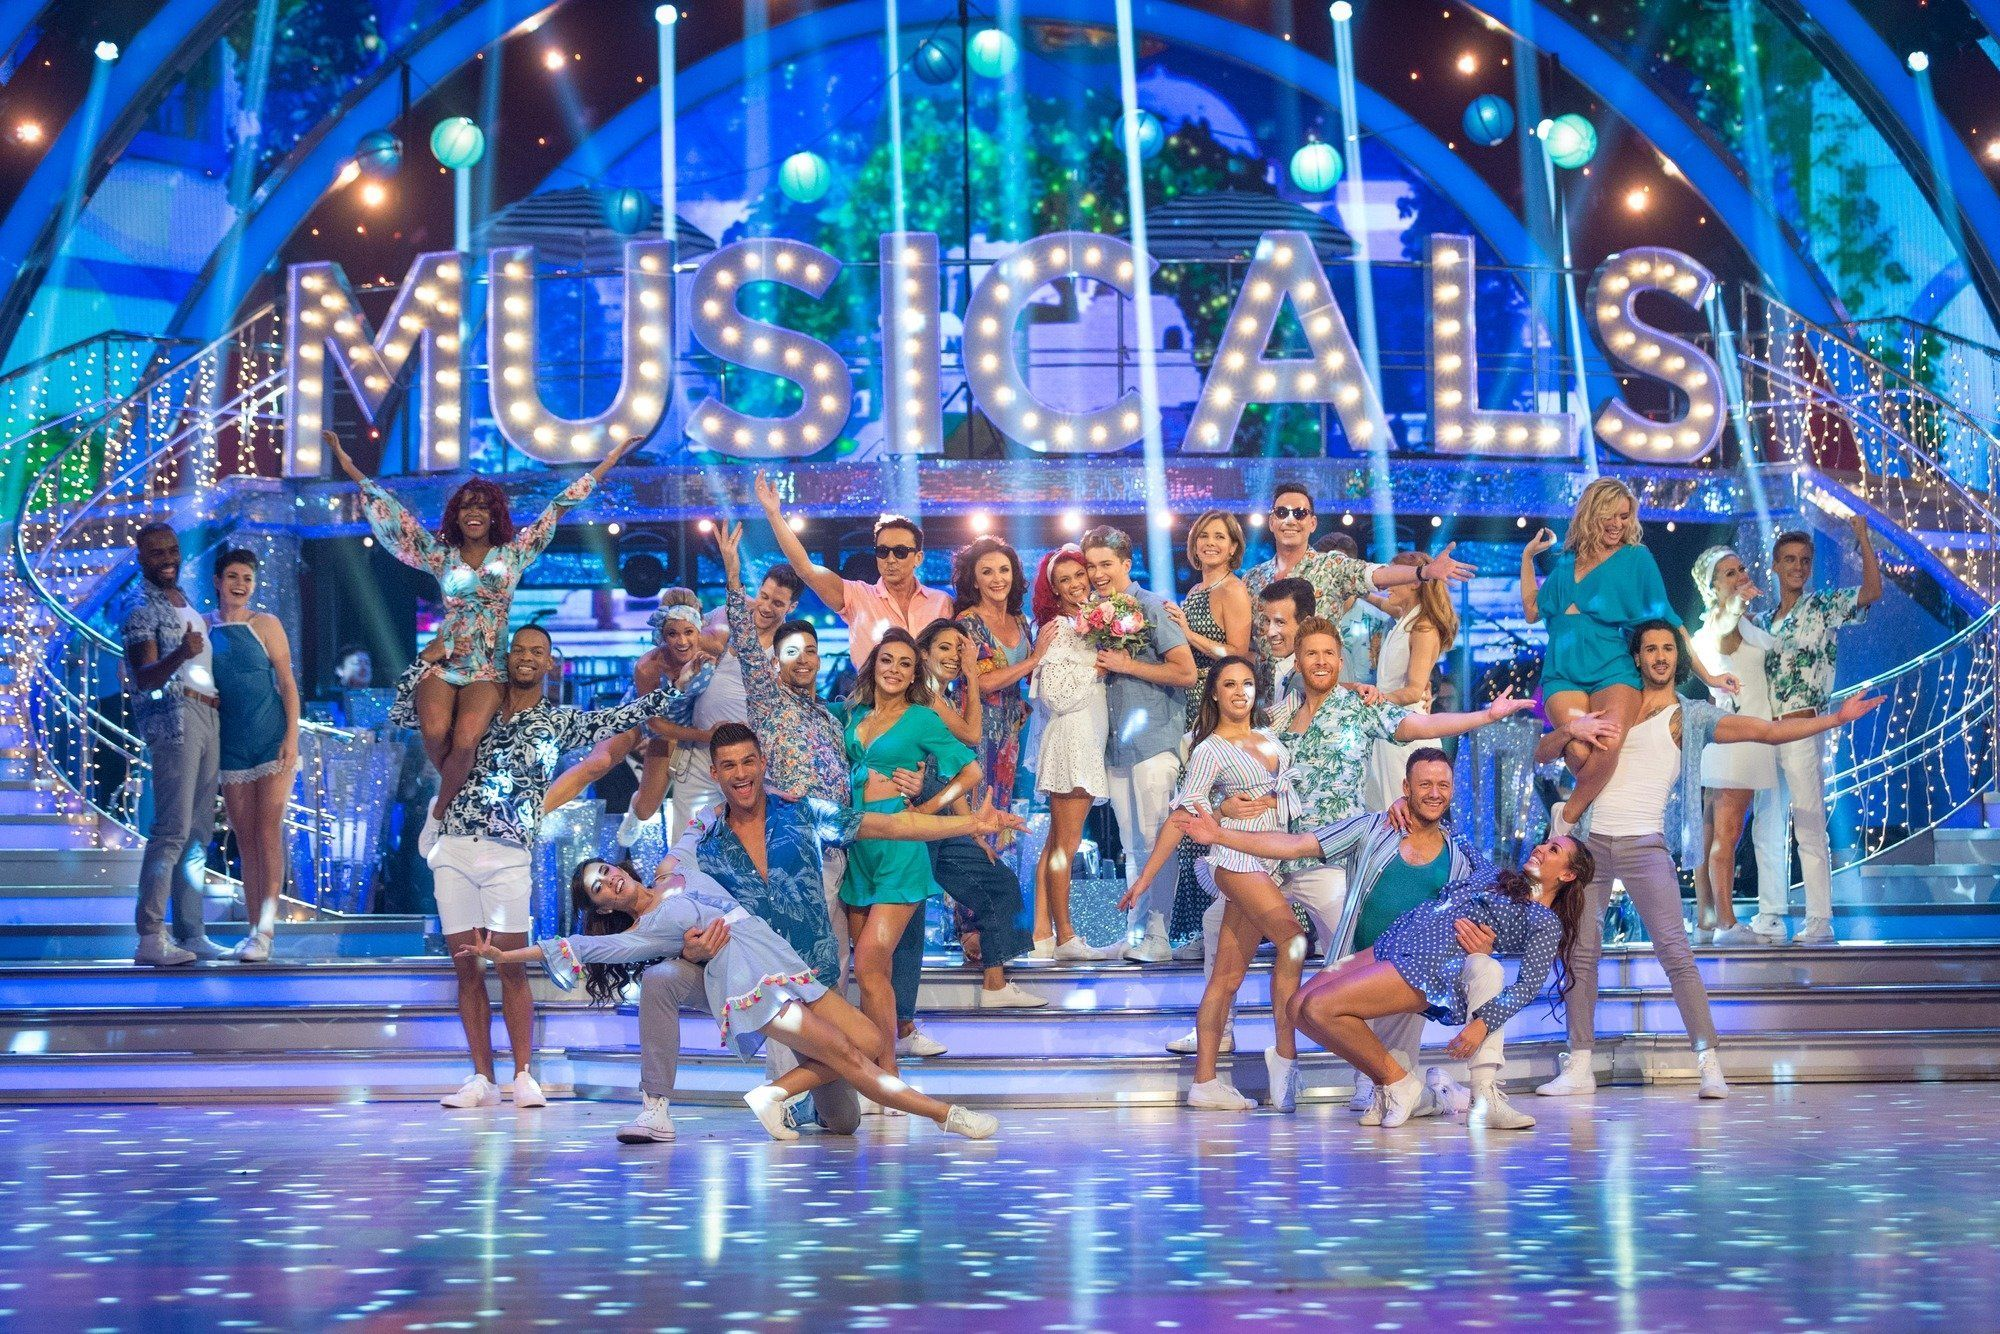 Revealed: Here's What The 'Strictly Come Dancing' Semi-Finalists Will Be Dancing To This